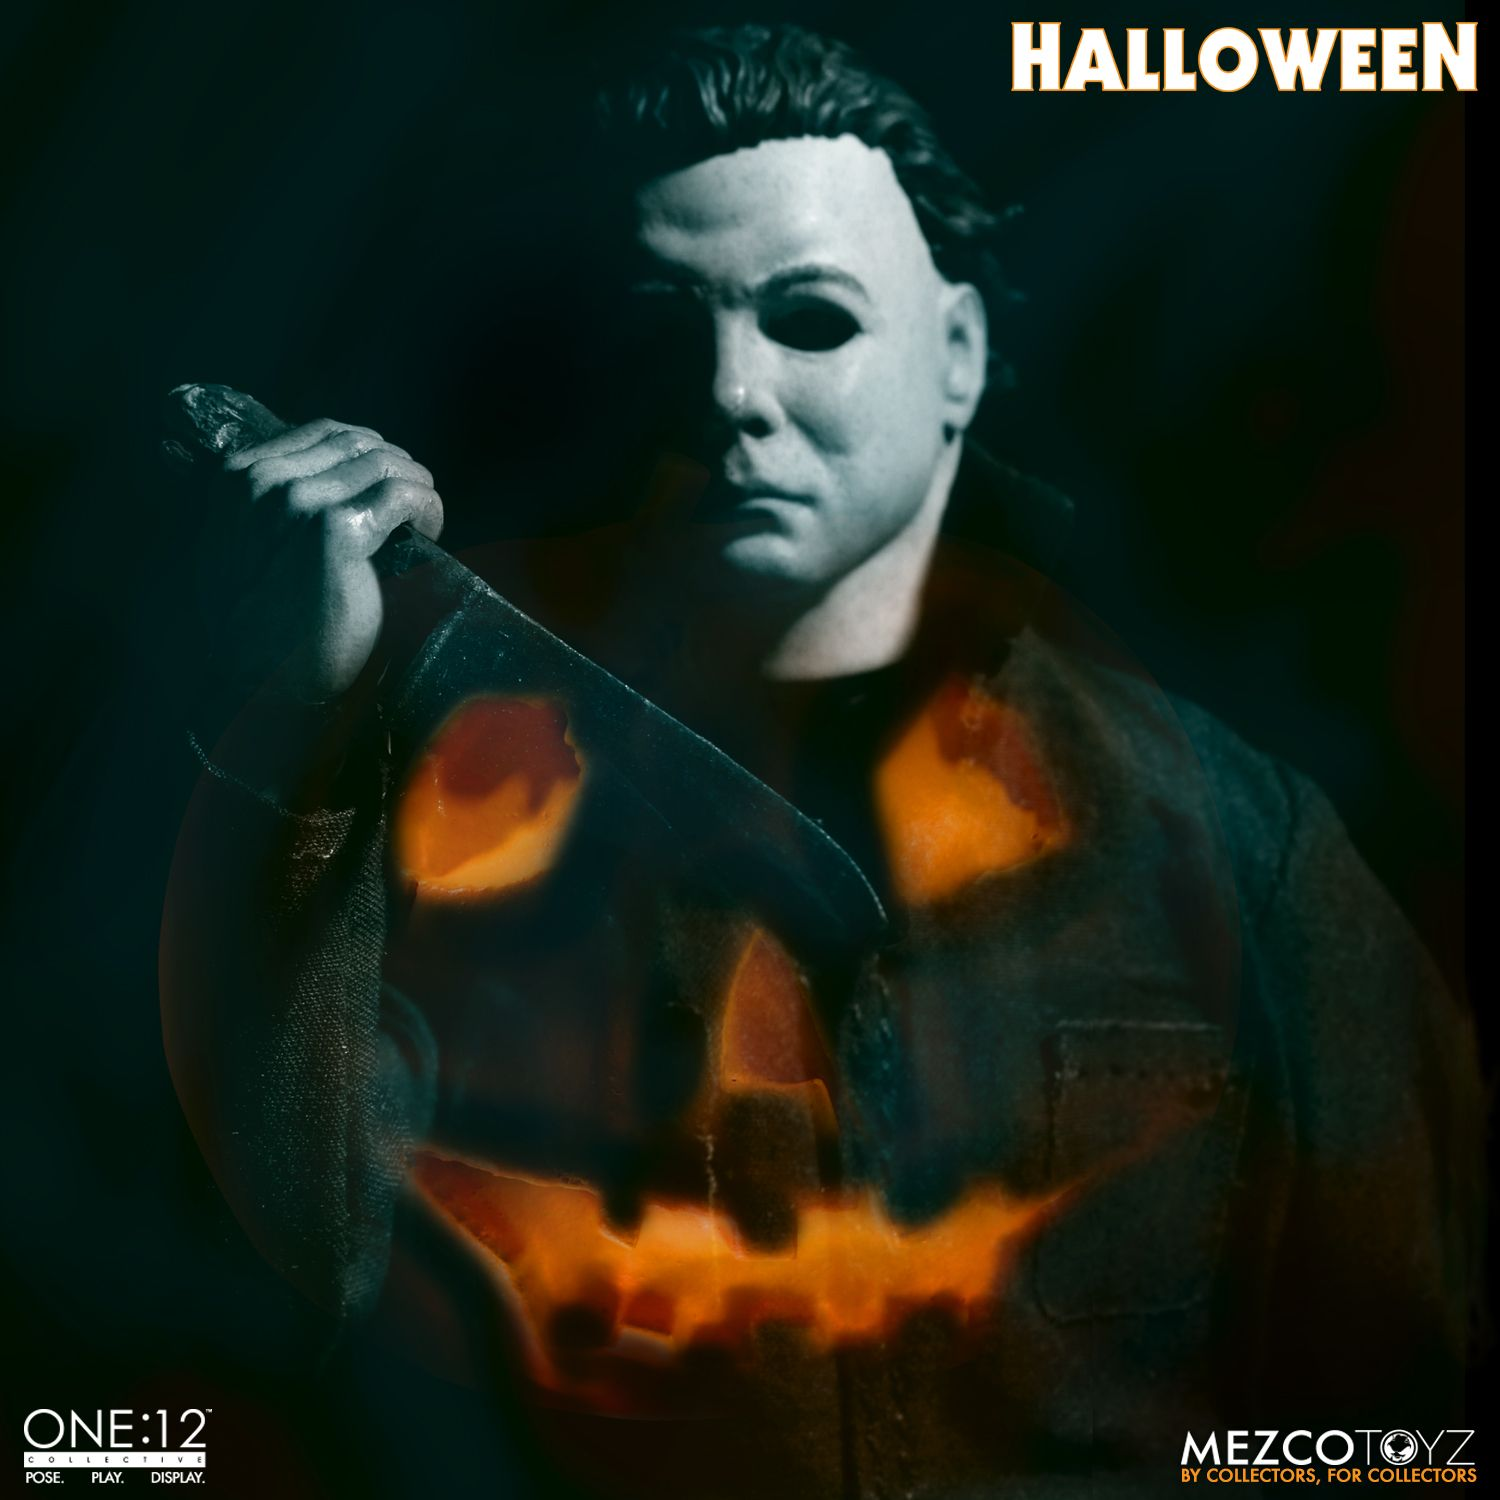 Pre-Order Mezco One:12 Collective Halloween Michael Myers Figure